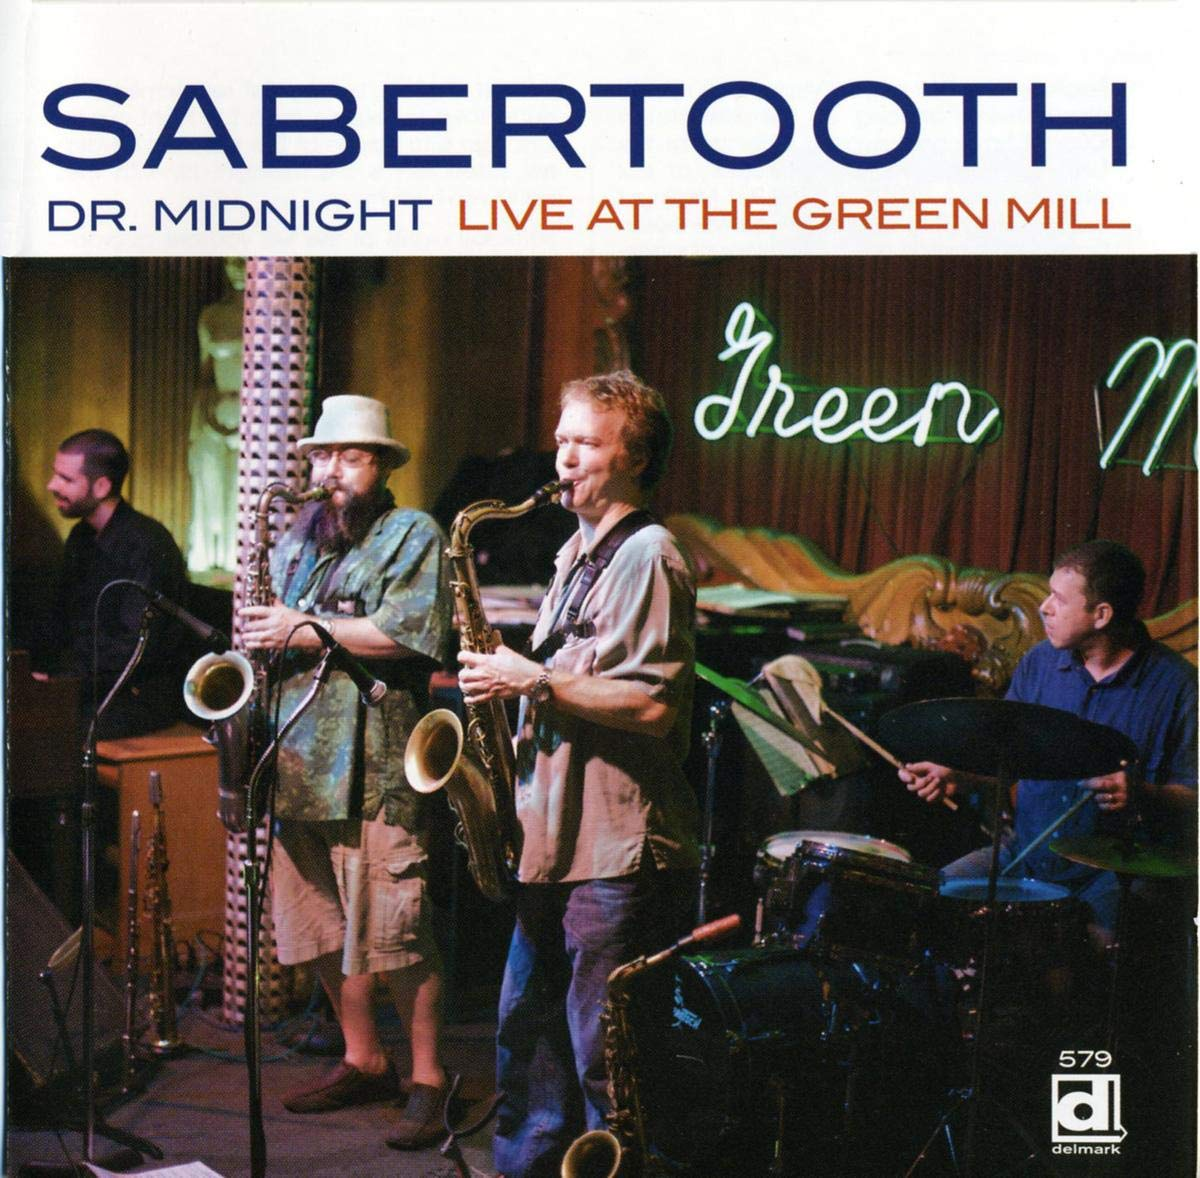 Dr. Midnight - Live The Green Mill 2021 autumn and winter new Mesa Mall At